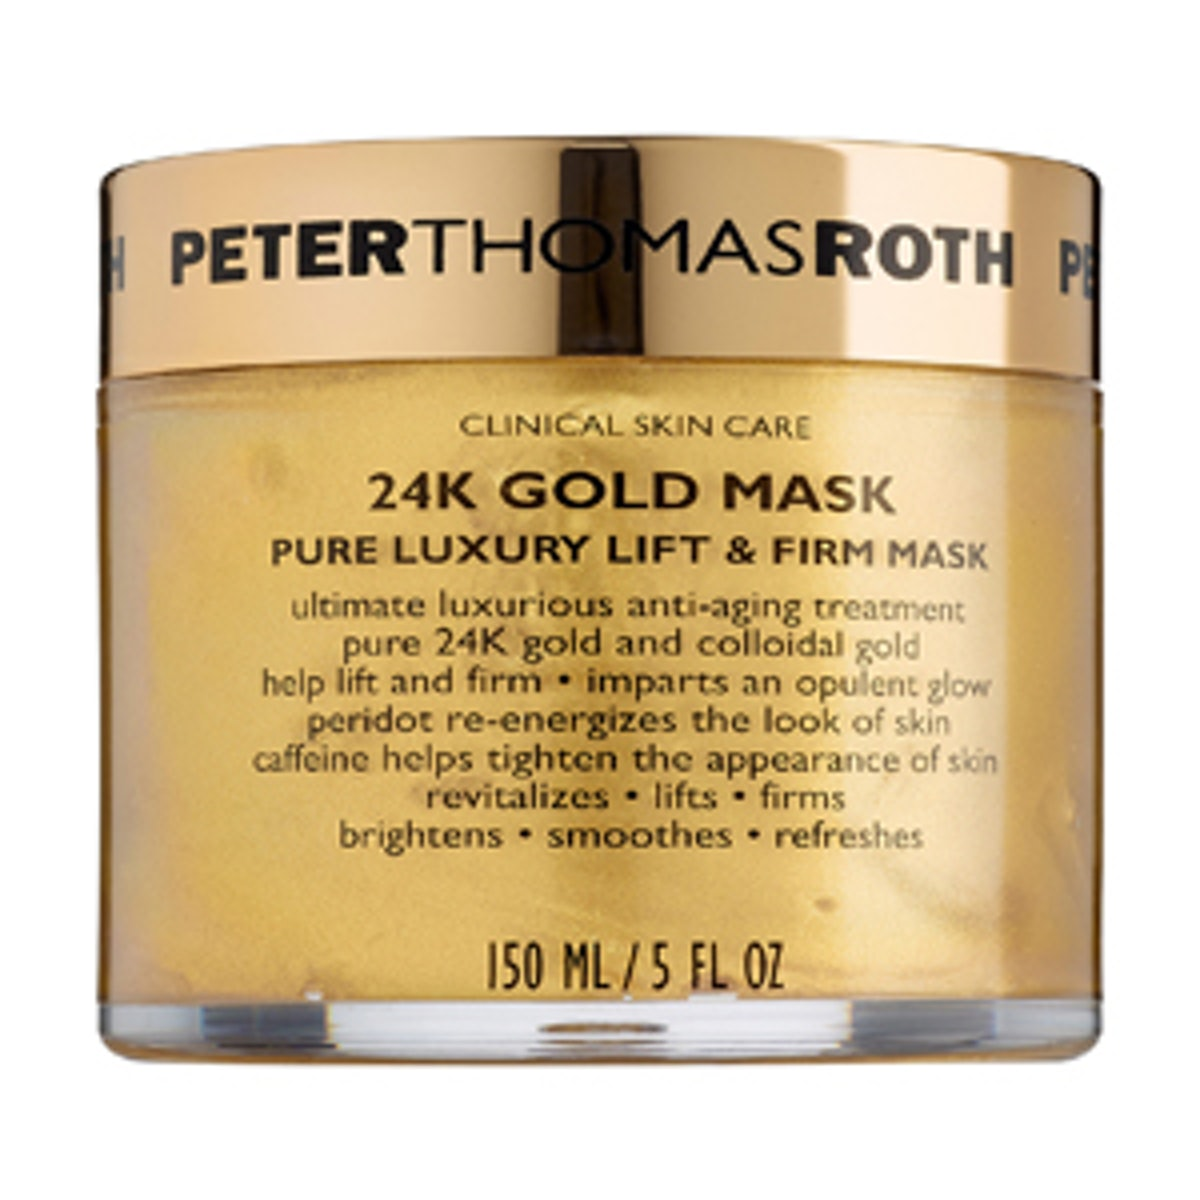 Luxury Lift & Firm Mask